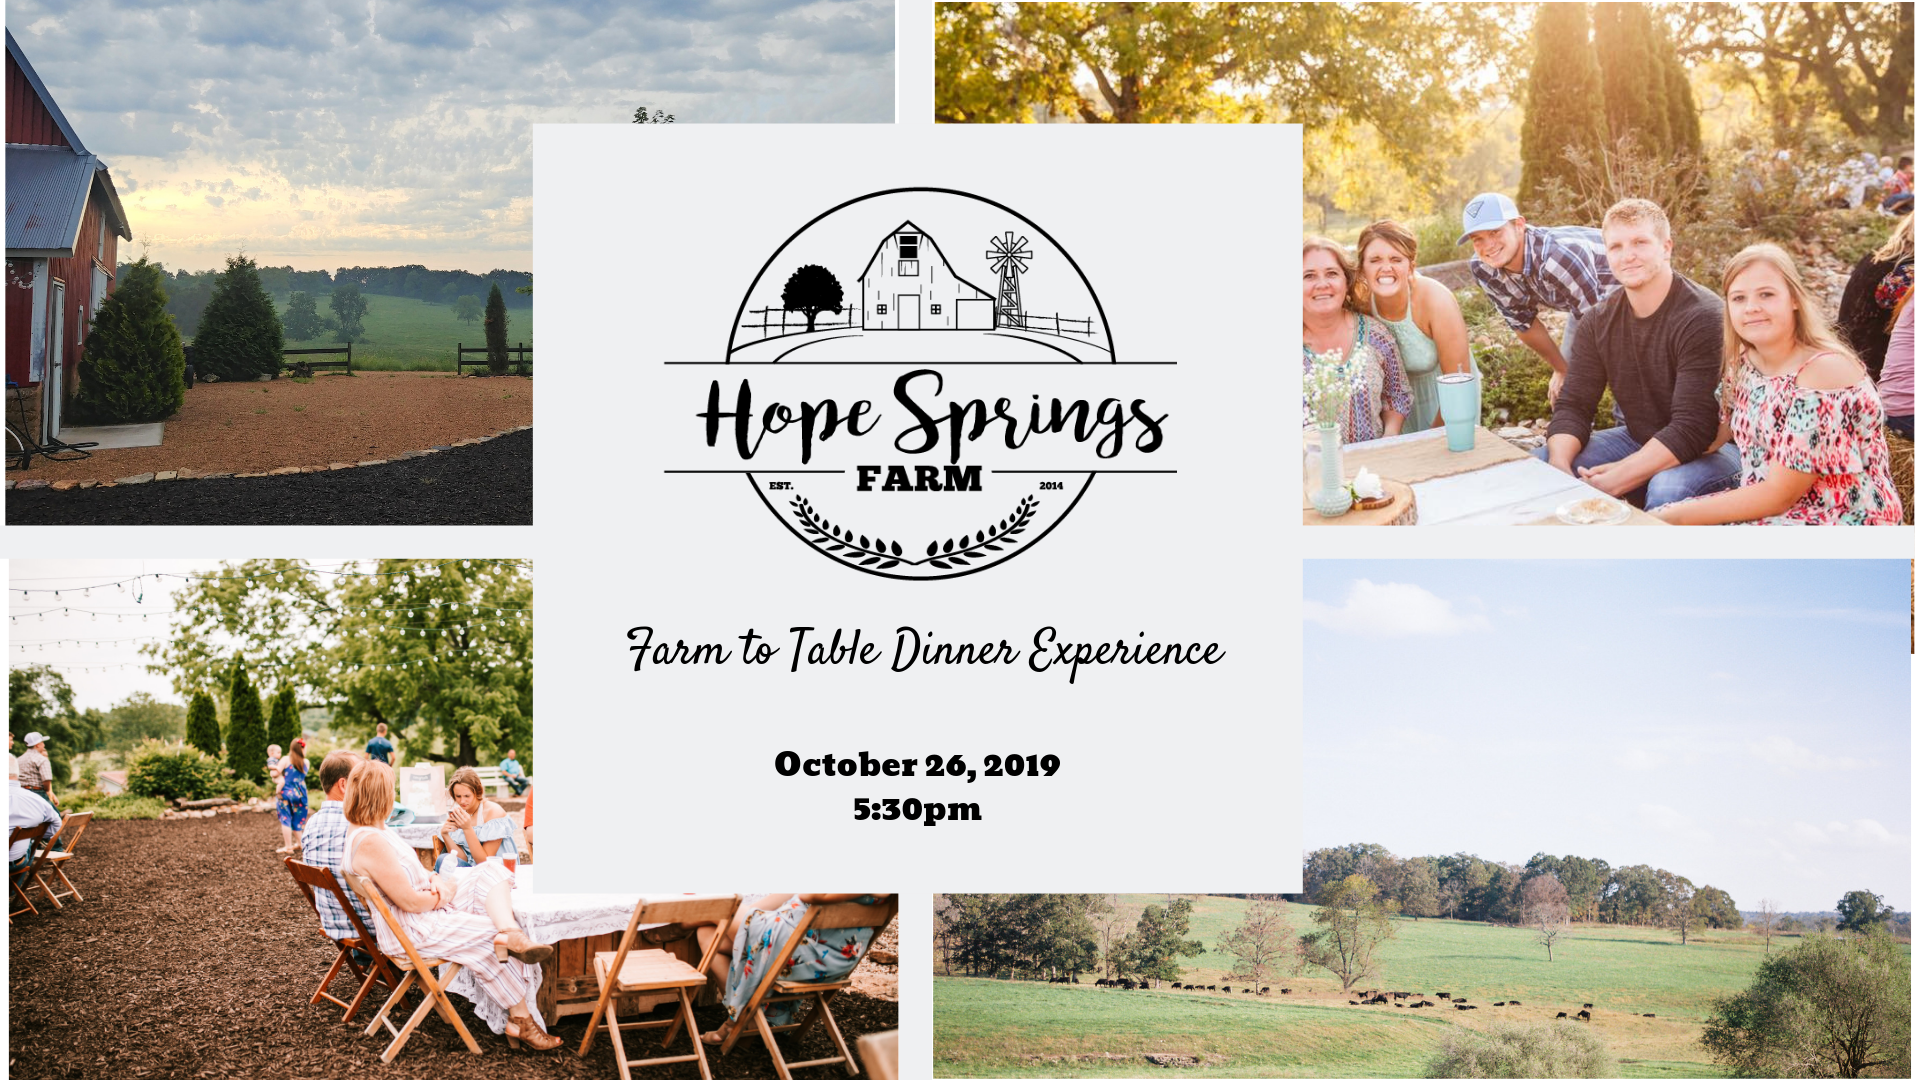 Farm to Table Dinner Experience image